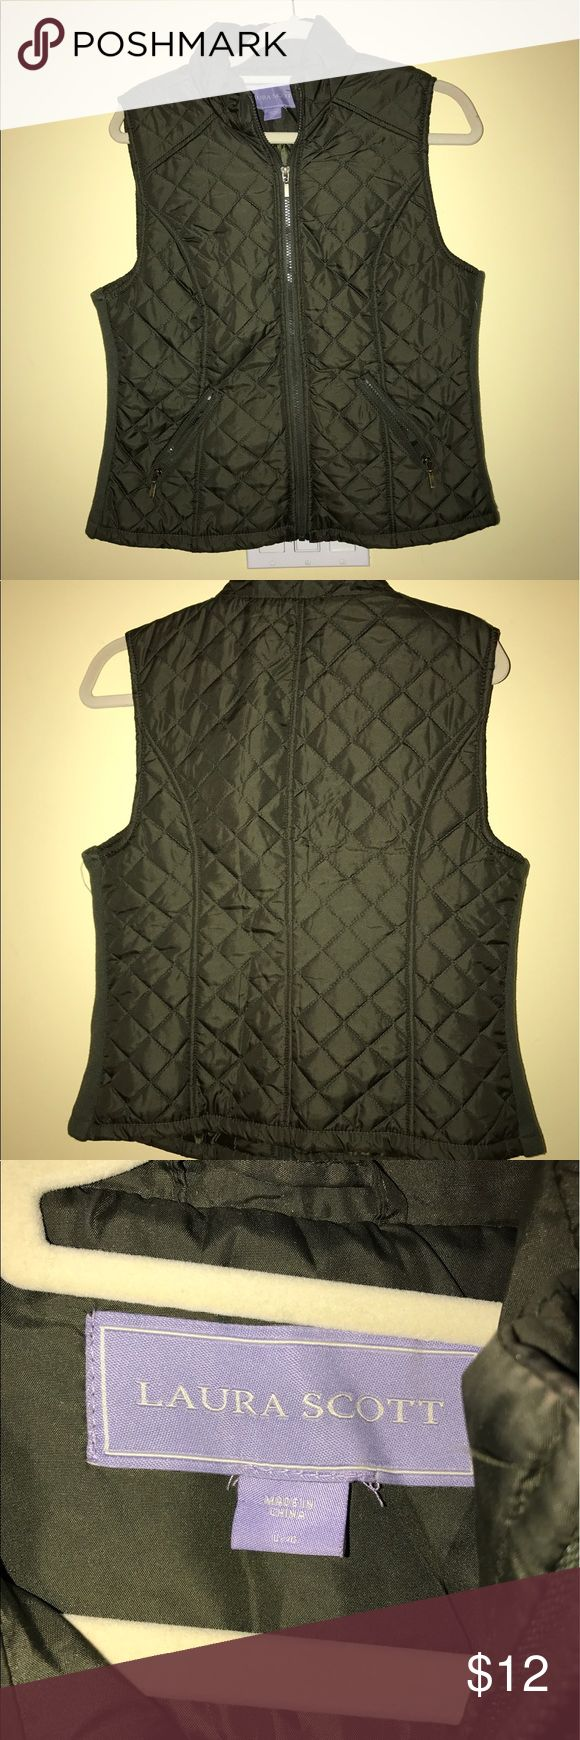 Olive green vest Purchased at sears. size large. Perfect condition. Runs a little smaller. Laura Scott Jackets & Coats Vests